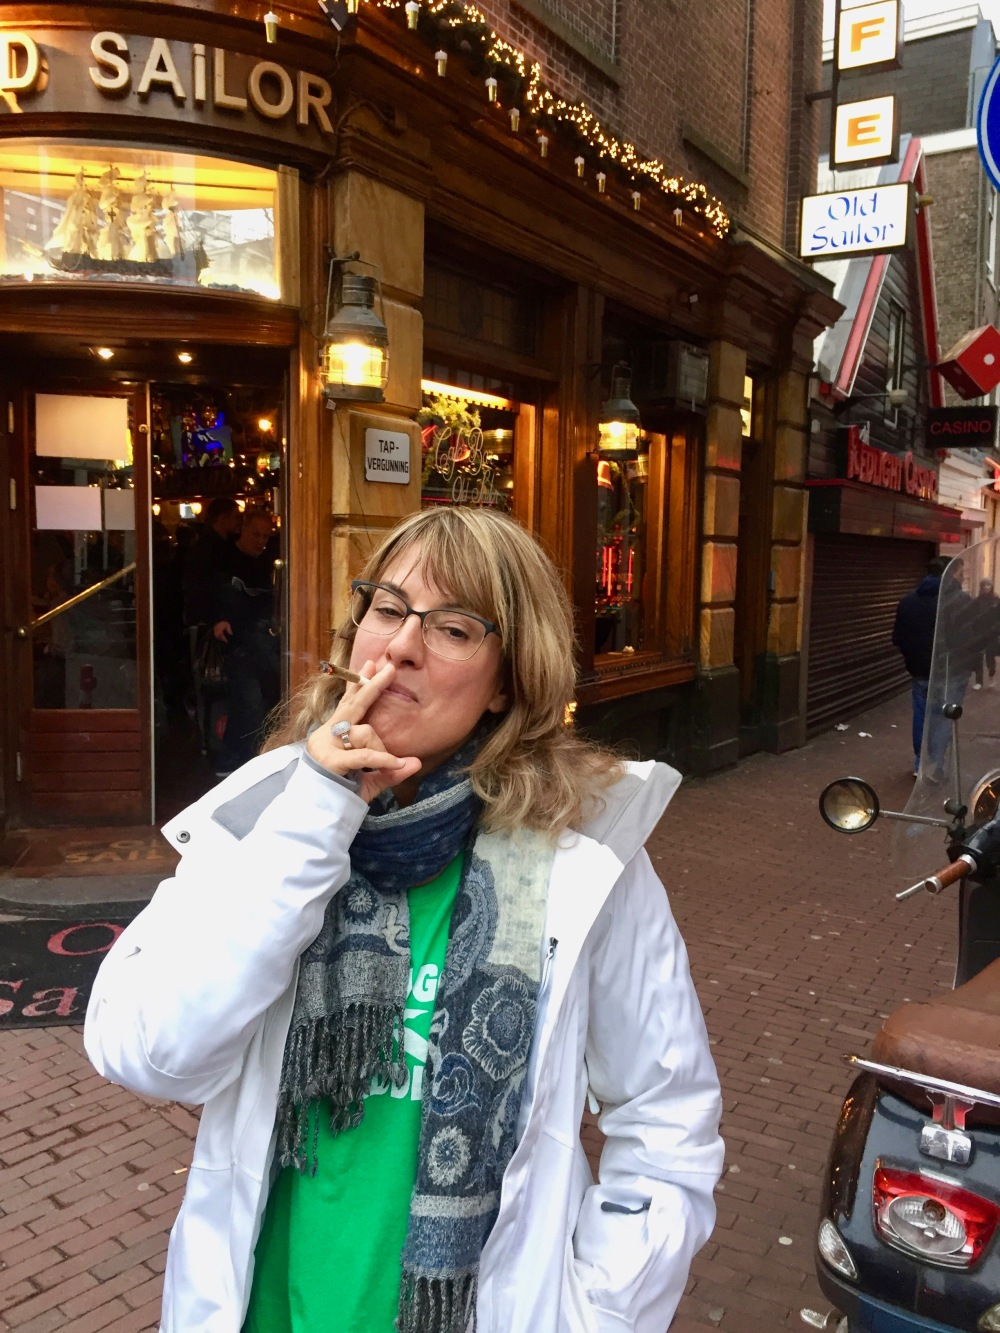 Christmas, 2017 - Red Light District, Amsterdam, North Holland, Netherlands - Enjoying a marijuana joint!